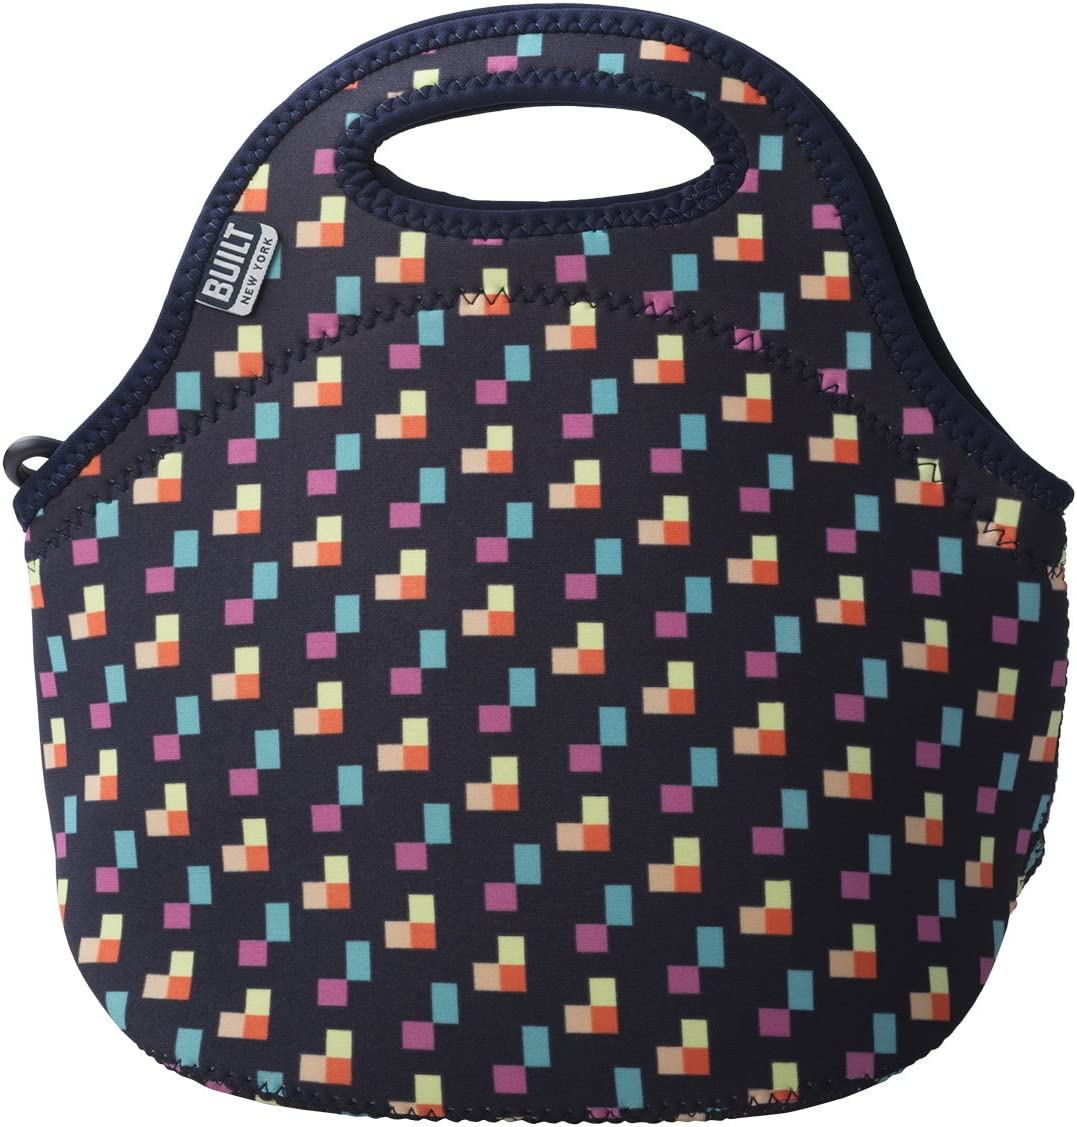 BUILT Gourmet Getaway Soft Neoprene Lunch Tote Bag - Lightweight, Insulated and Reusable, One Size, Pixel Confetti